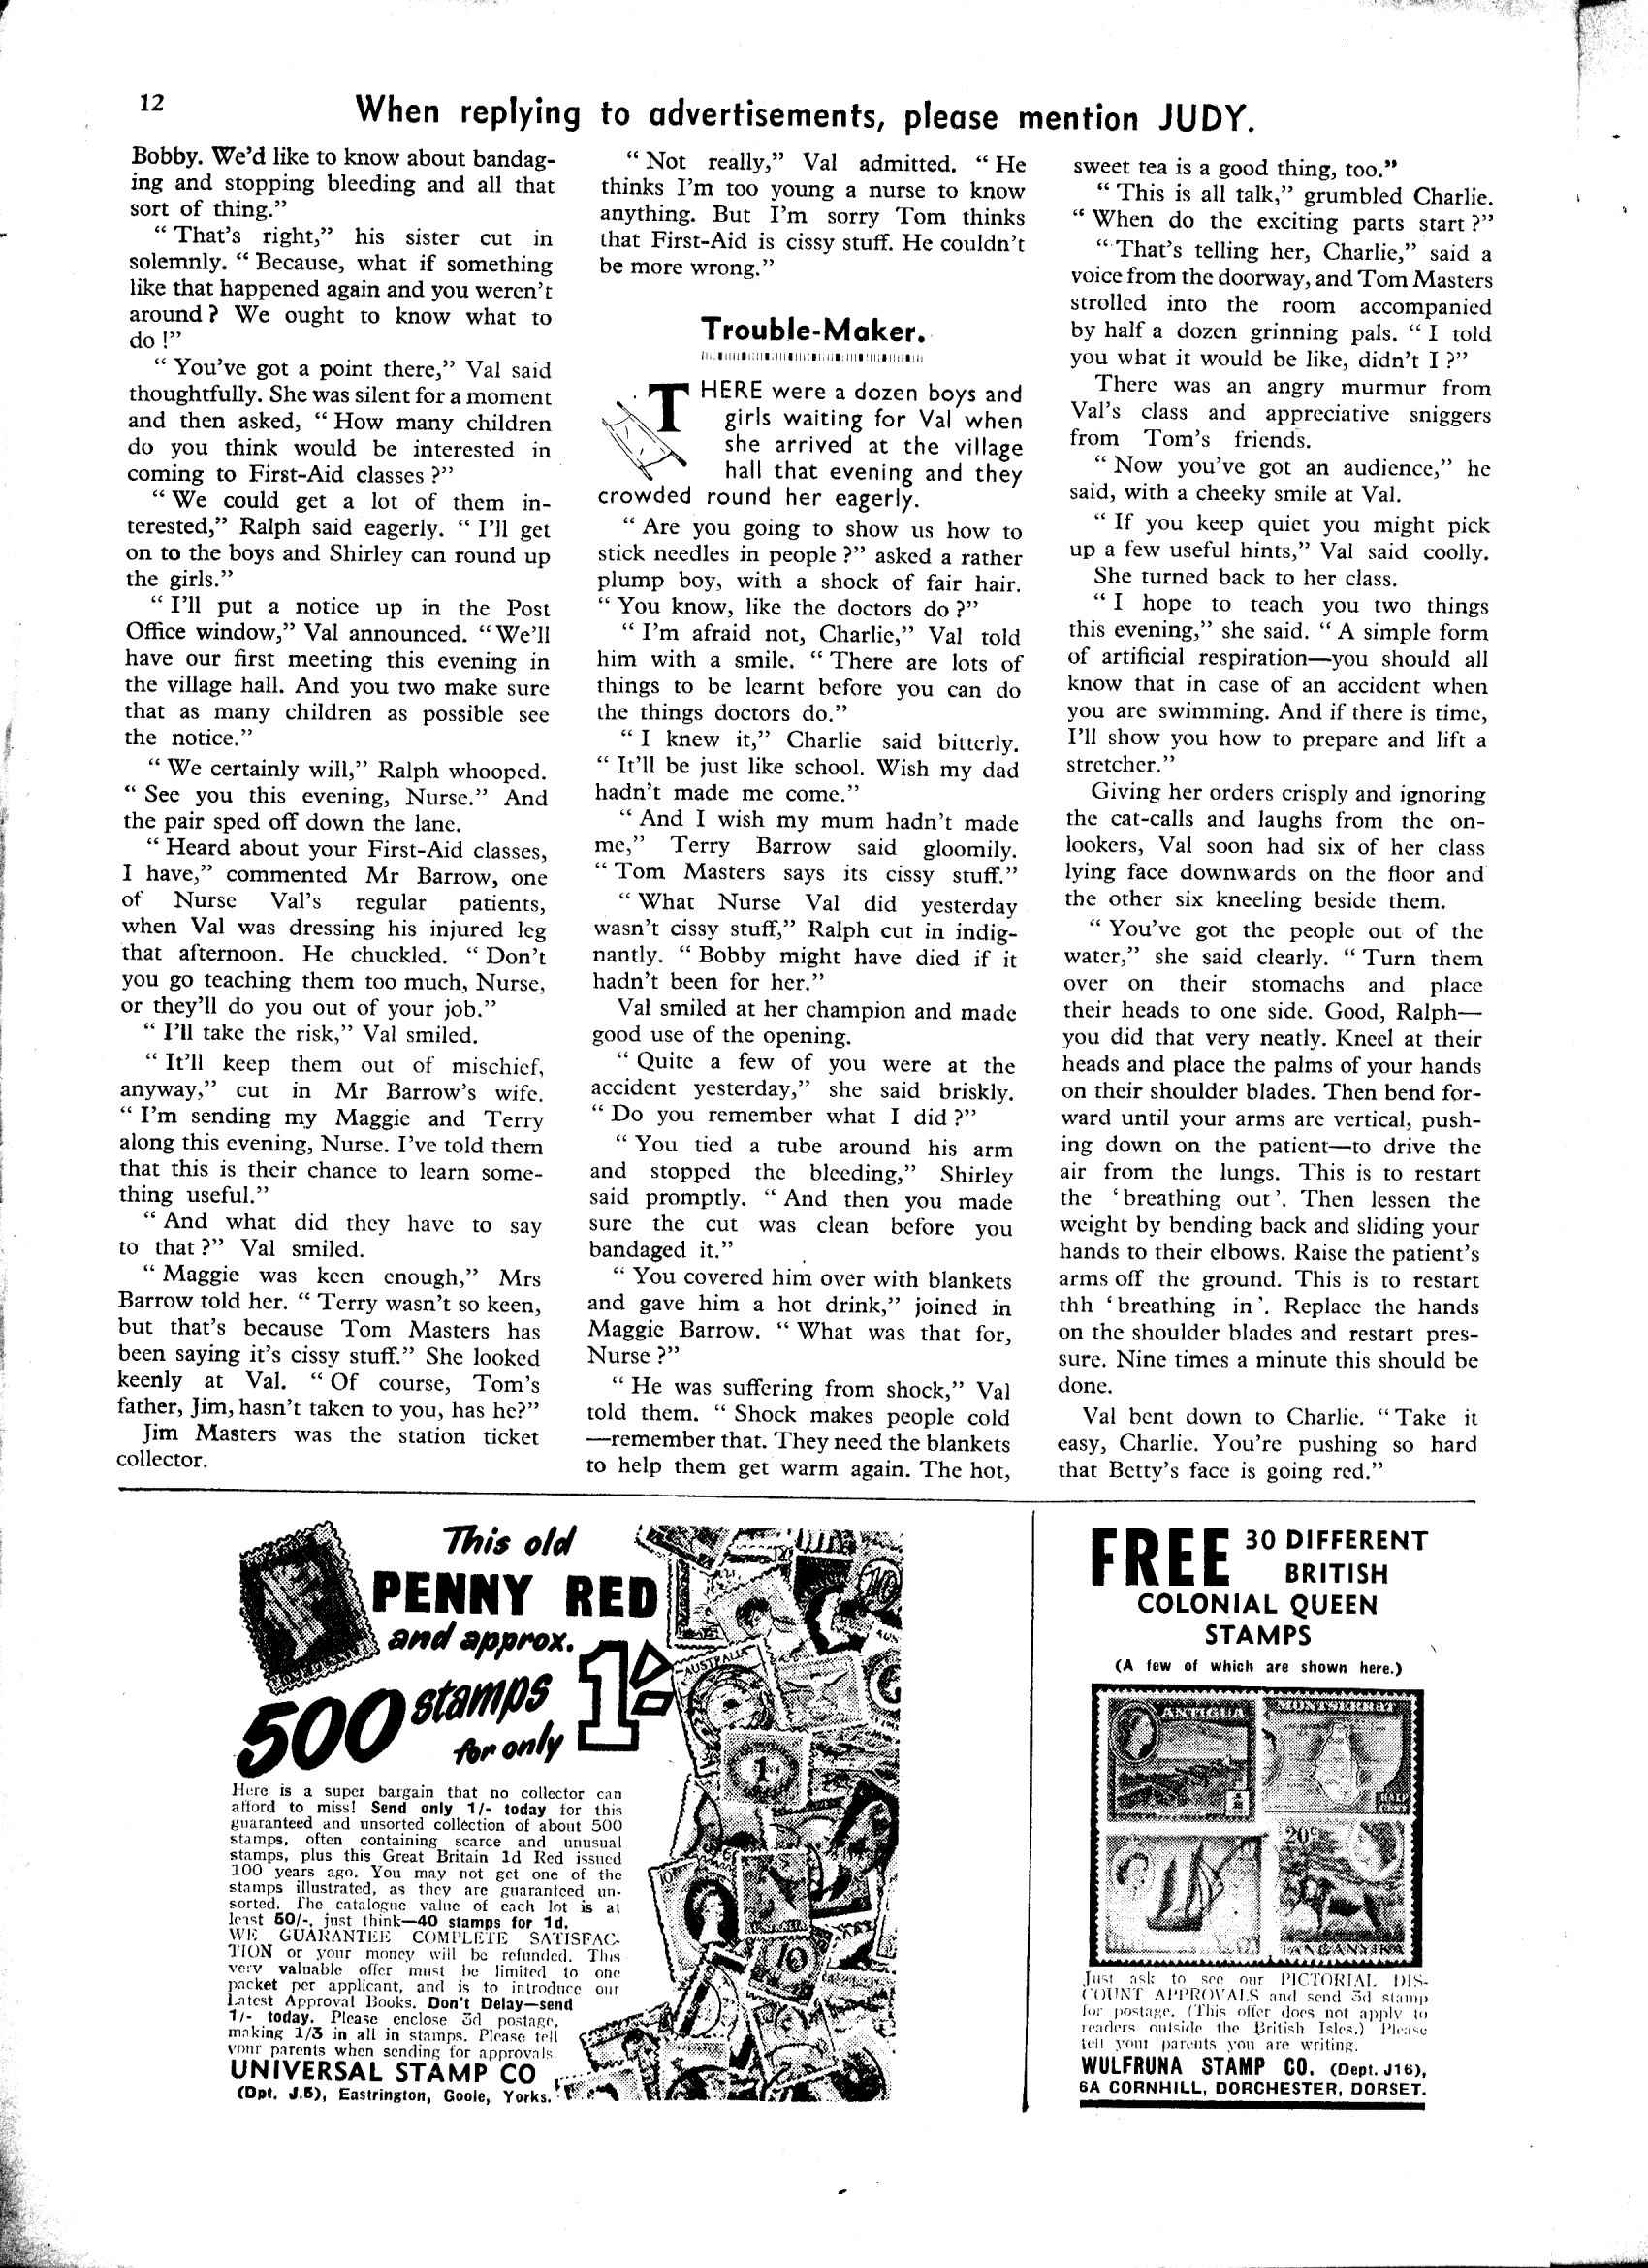 Read online Judy comic -  Issue #46 - 12